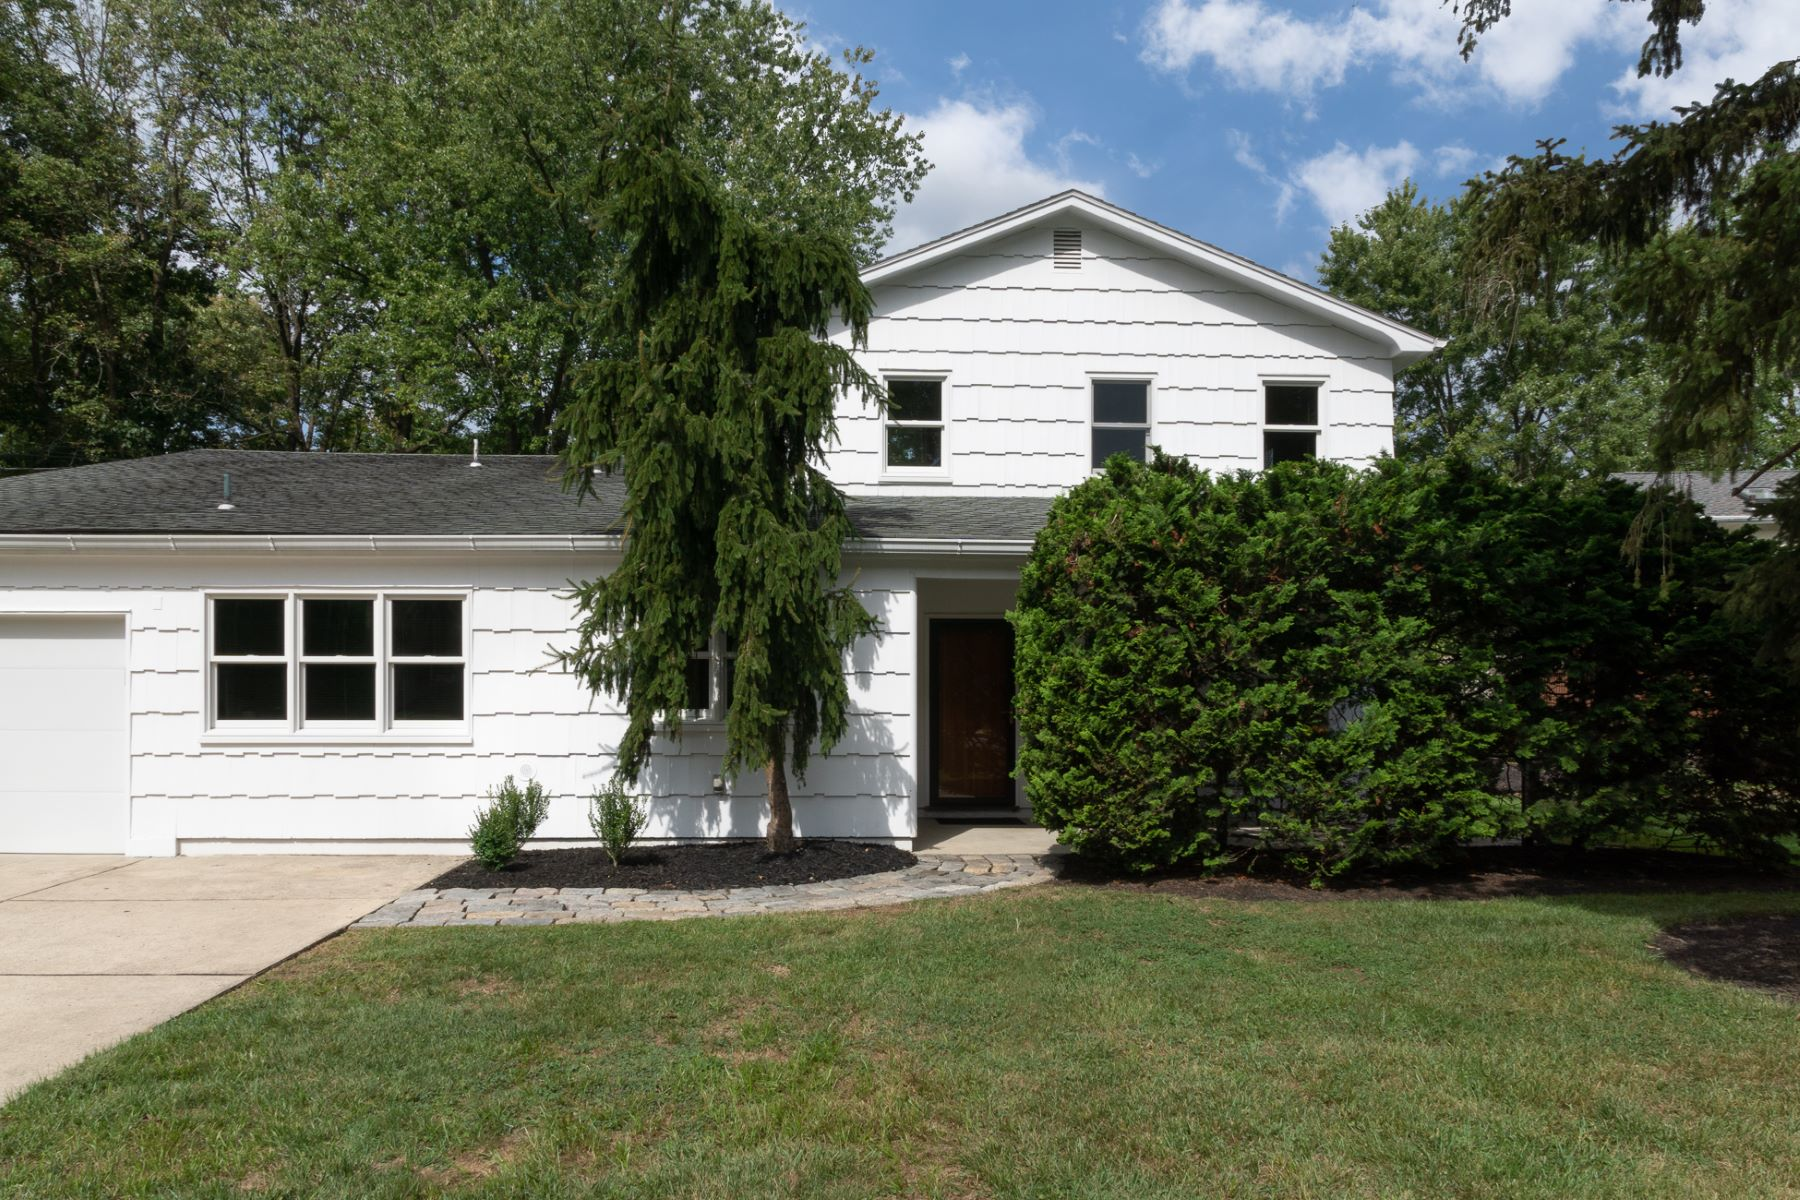 Crisp White Cul-de-sac Home Right On Colonial Lake 73 Hopatcong Drive, Lawrence Township, New Jersey 08648 États-Unis